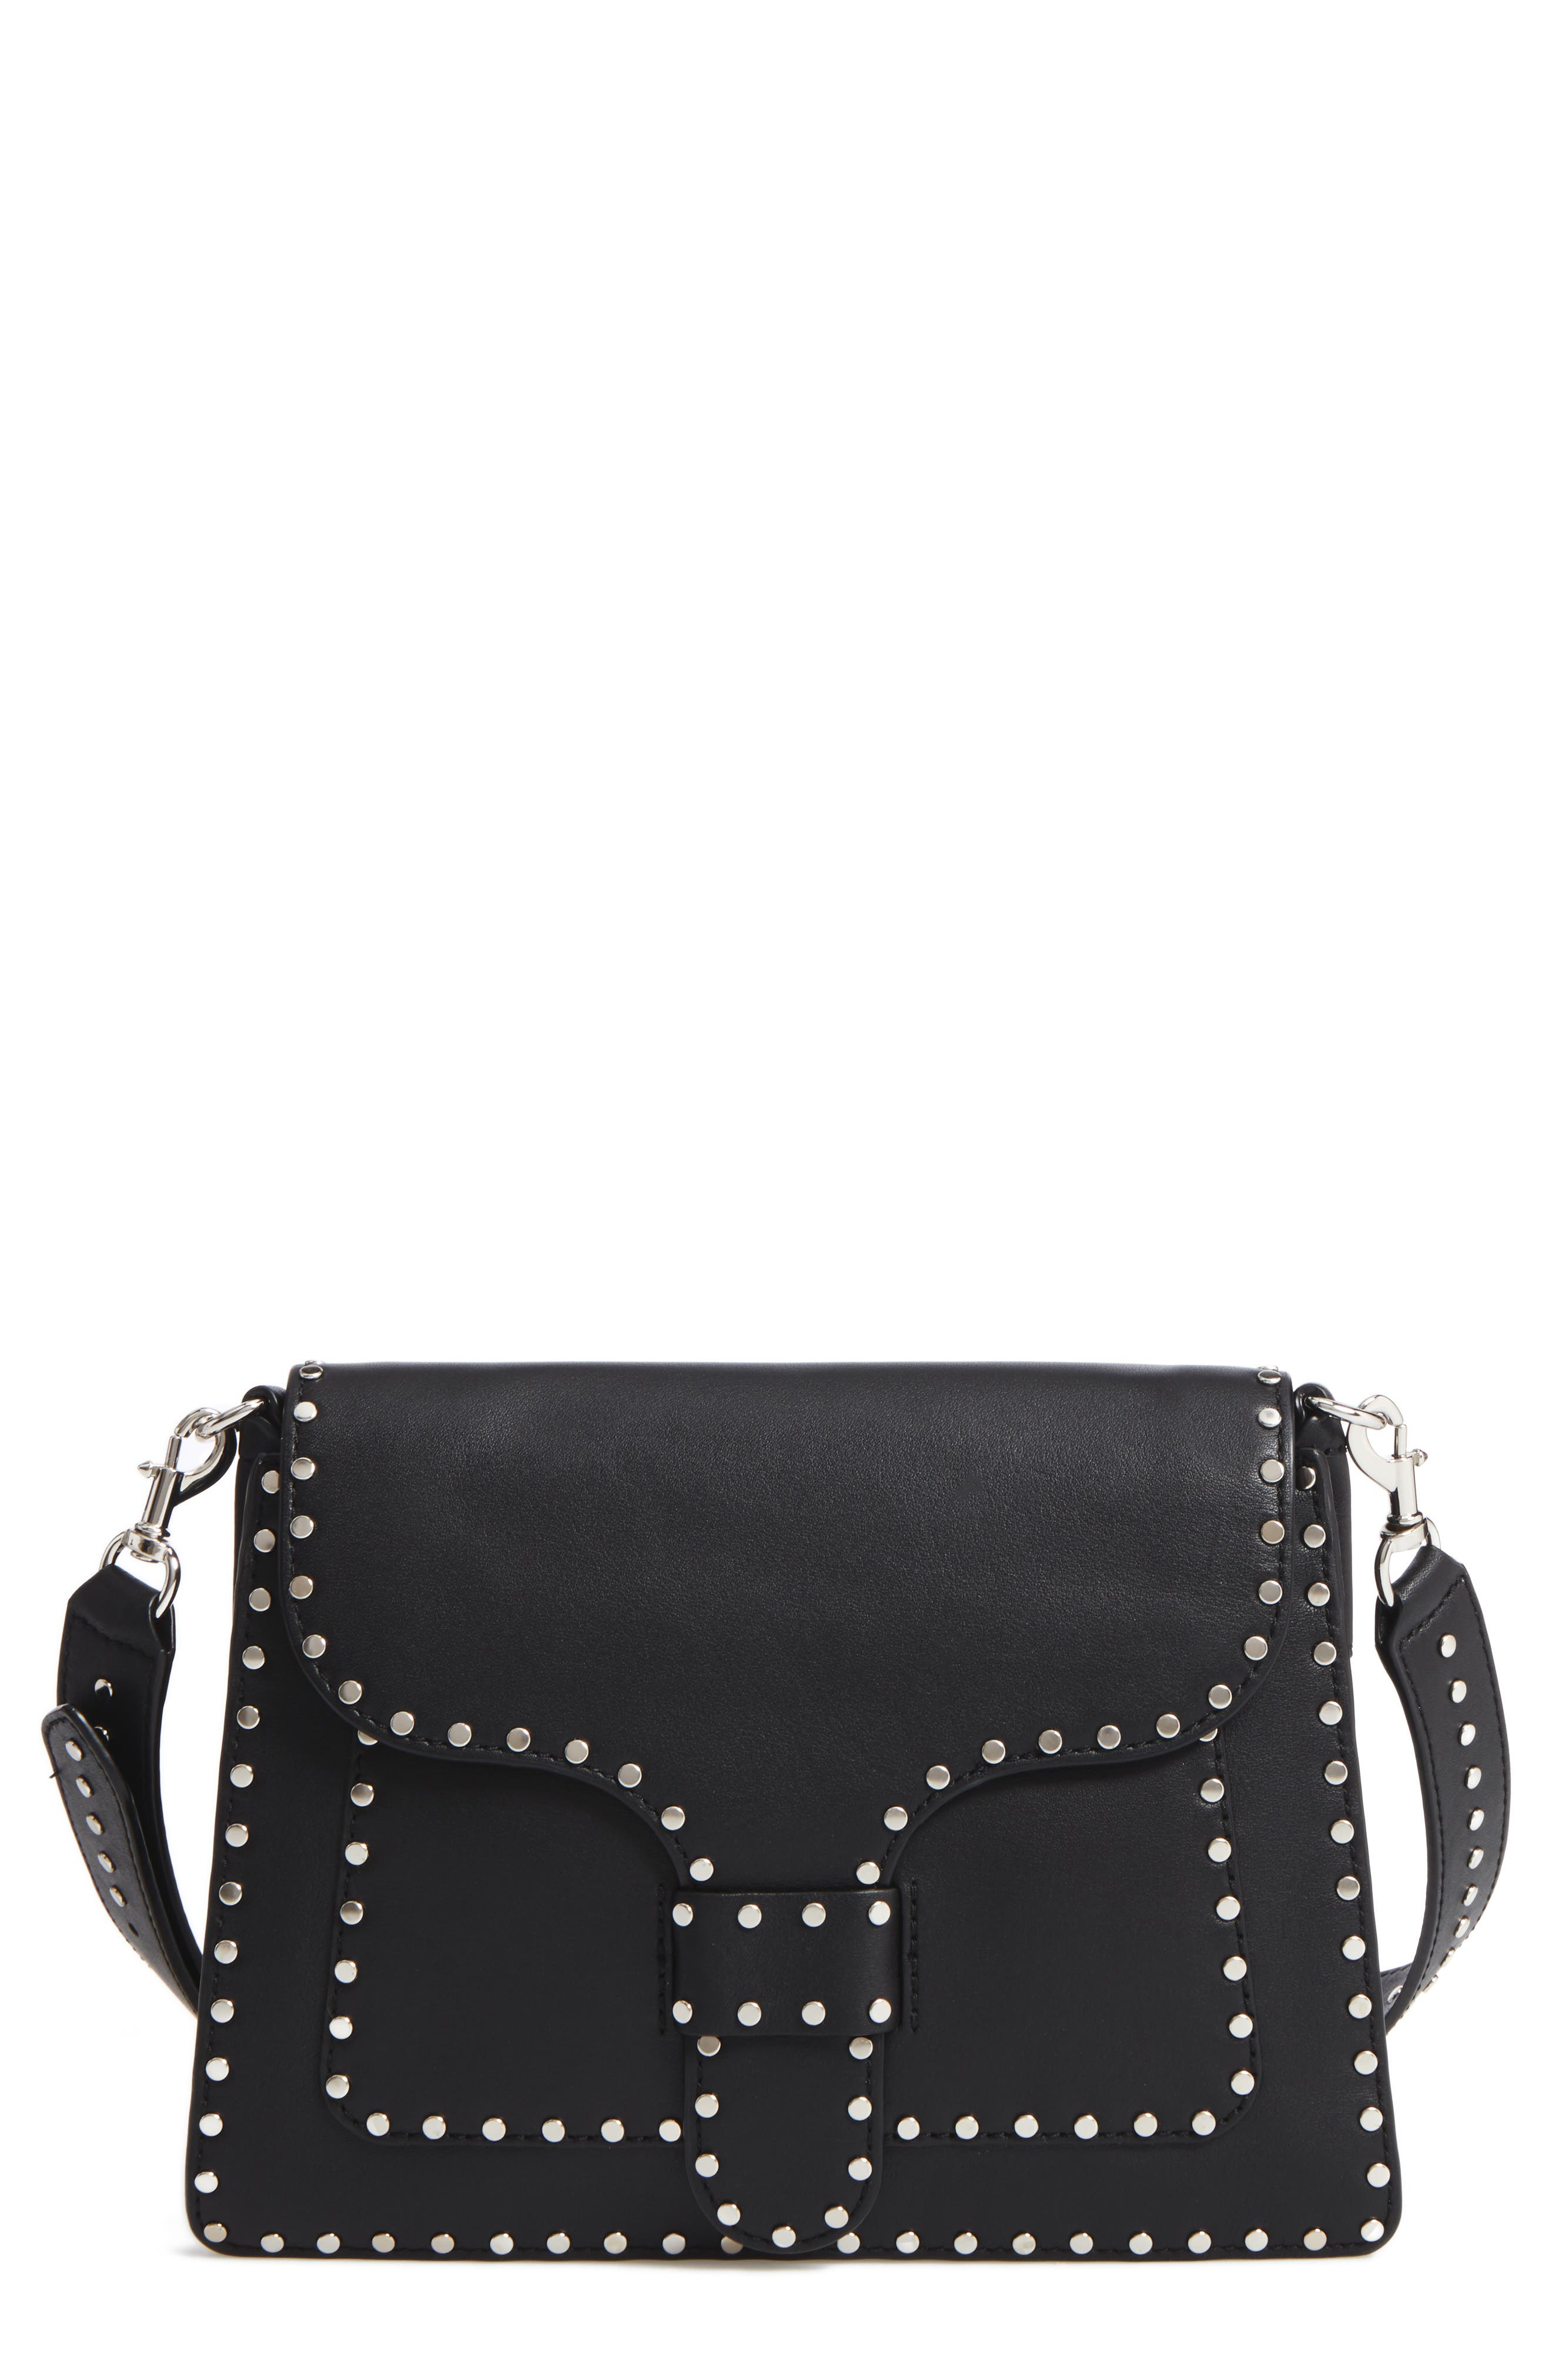 Rebecca Minkoff Slim Midnighter Leather Crossbody Bag